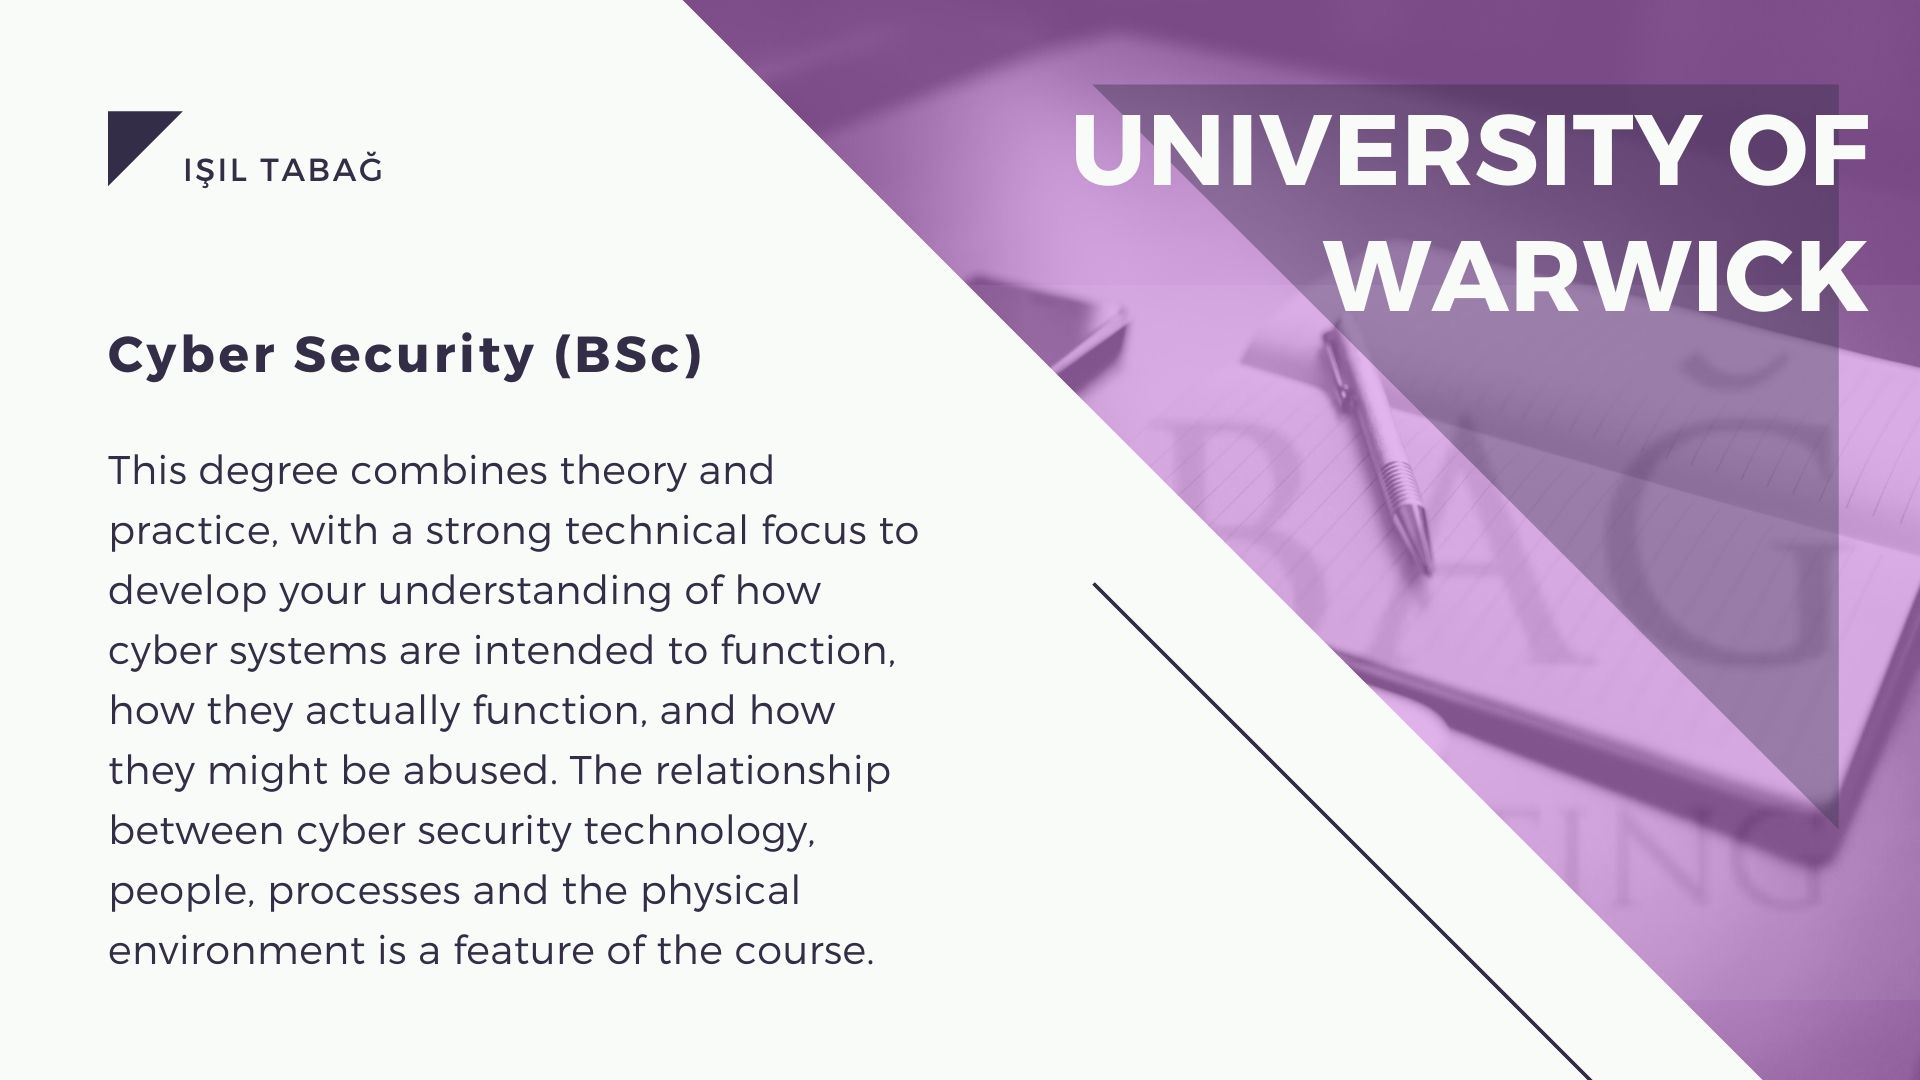 University Of Warwick Cyber Security - Isil Tabag